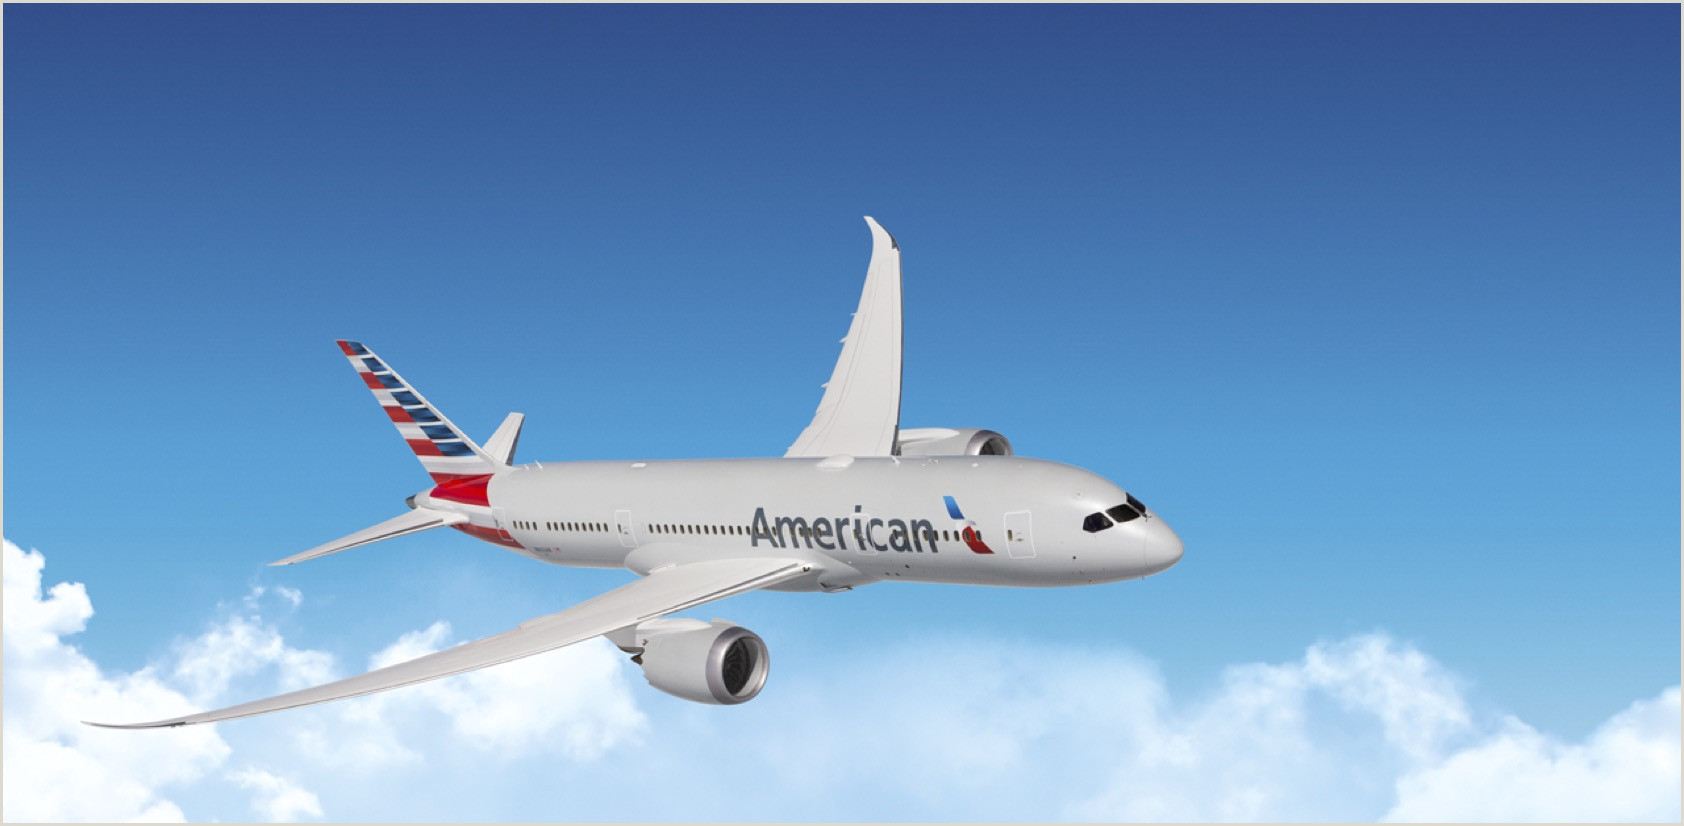 Capital Ones Best Business Cards For Mileage Which Card You Should Use To Purchase Airline Tickets [2020]